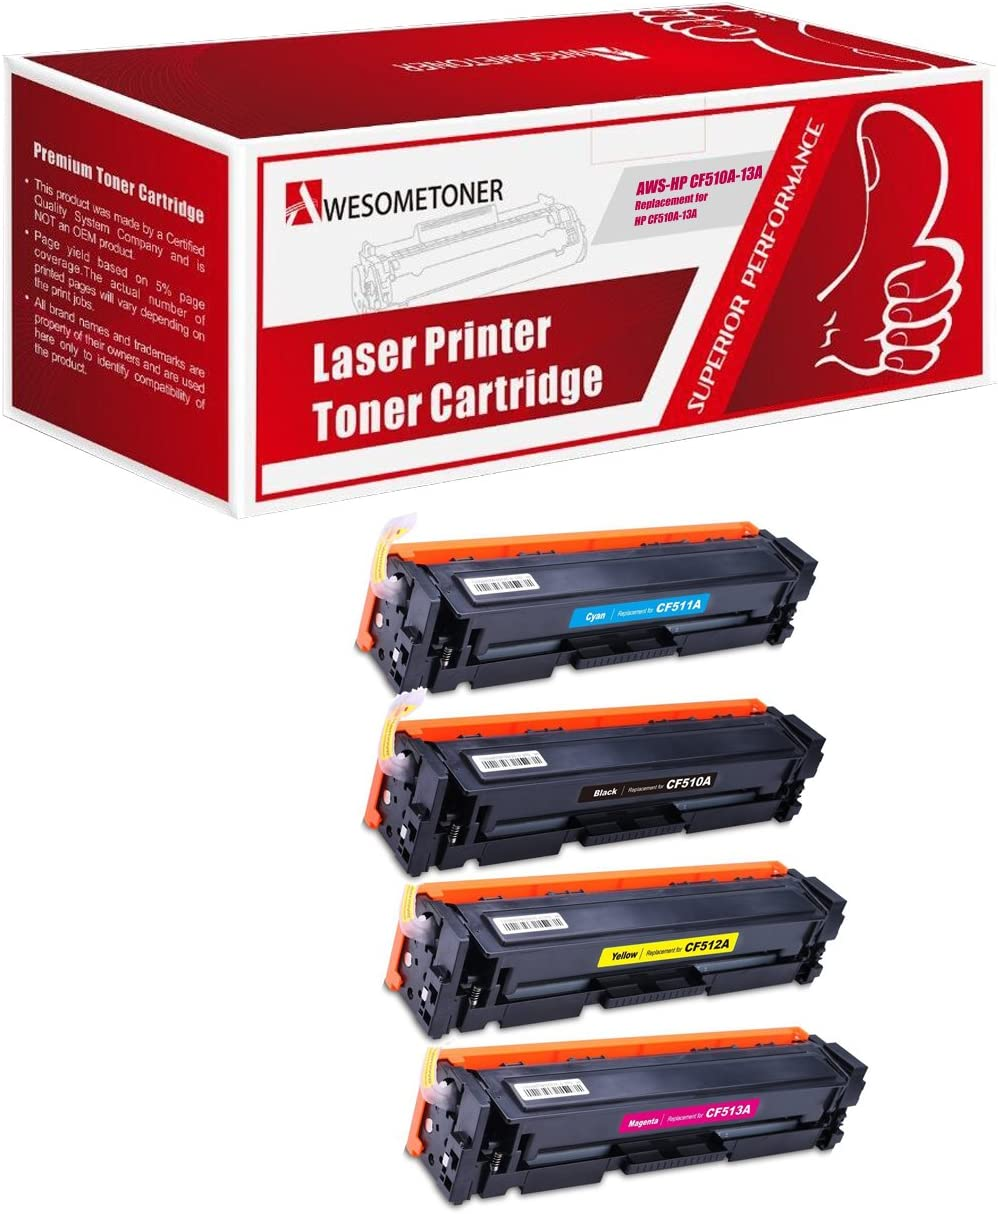 Awesometoner Compatible Toner Don't miss 4 years warranty the campaign Cartridge for HP Replacement CF510